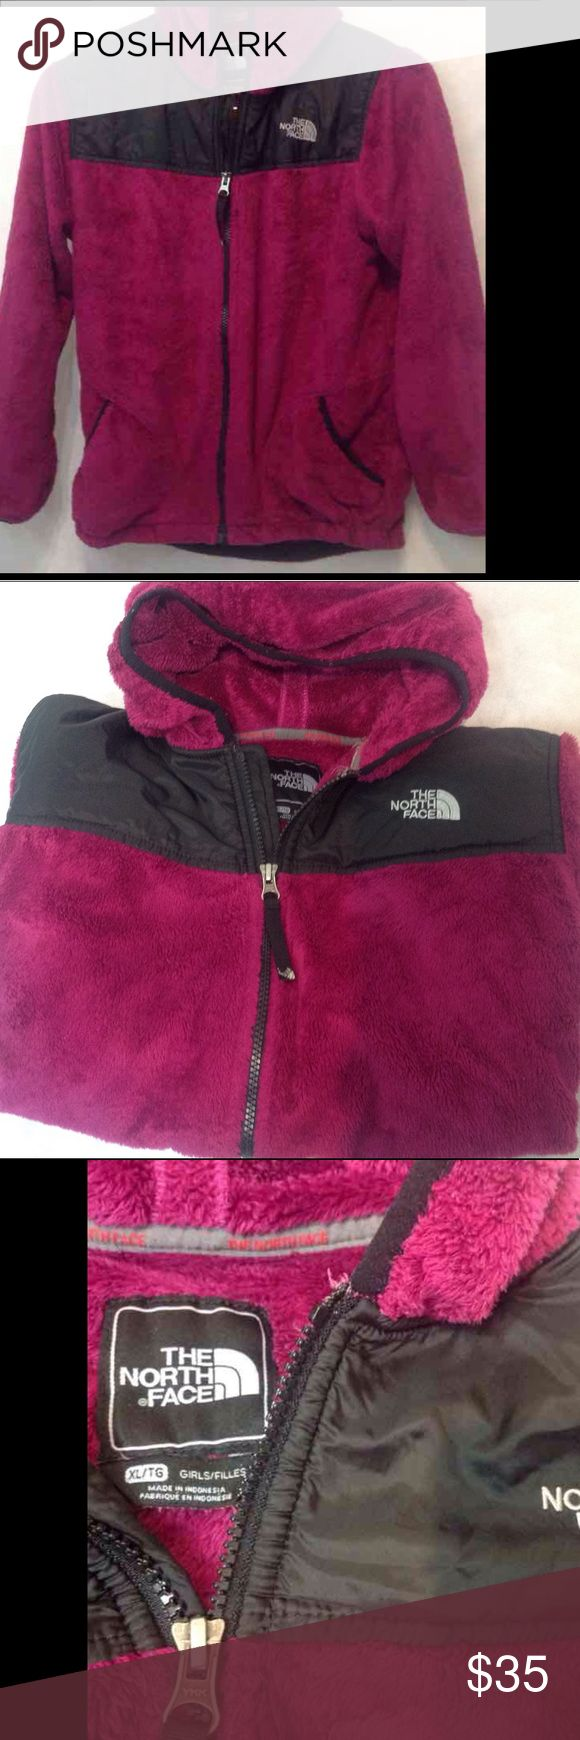 """North face XL Girls great pre owned condition North face XL Girls great pre owned condition. Purple/Cranberry/burgundy/Magenta Excellent Condition  High pile fleece  Full front zip, 2 side zip pockets  100% Polyester  Approximately 25"""" in length, 22"""" underarm to underarm, 20"""" arm inseam🌸 Magenta and Gray/Black Girls size XL/18 Please use measurements! North Face Jackets & Coats Puffers"""